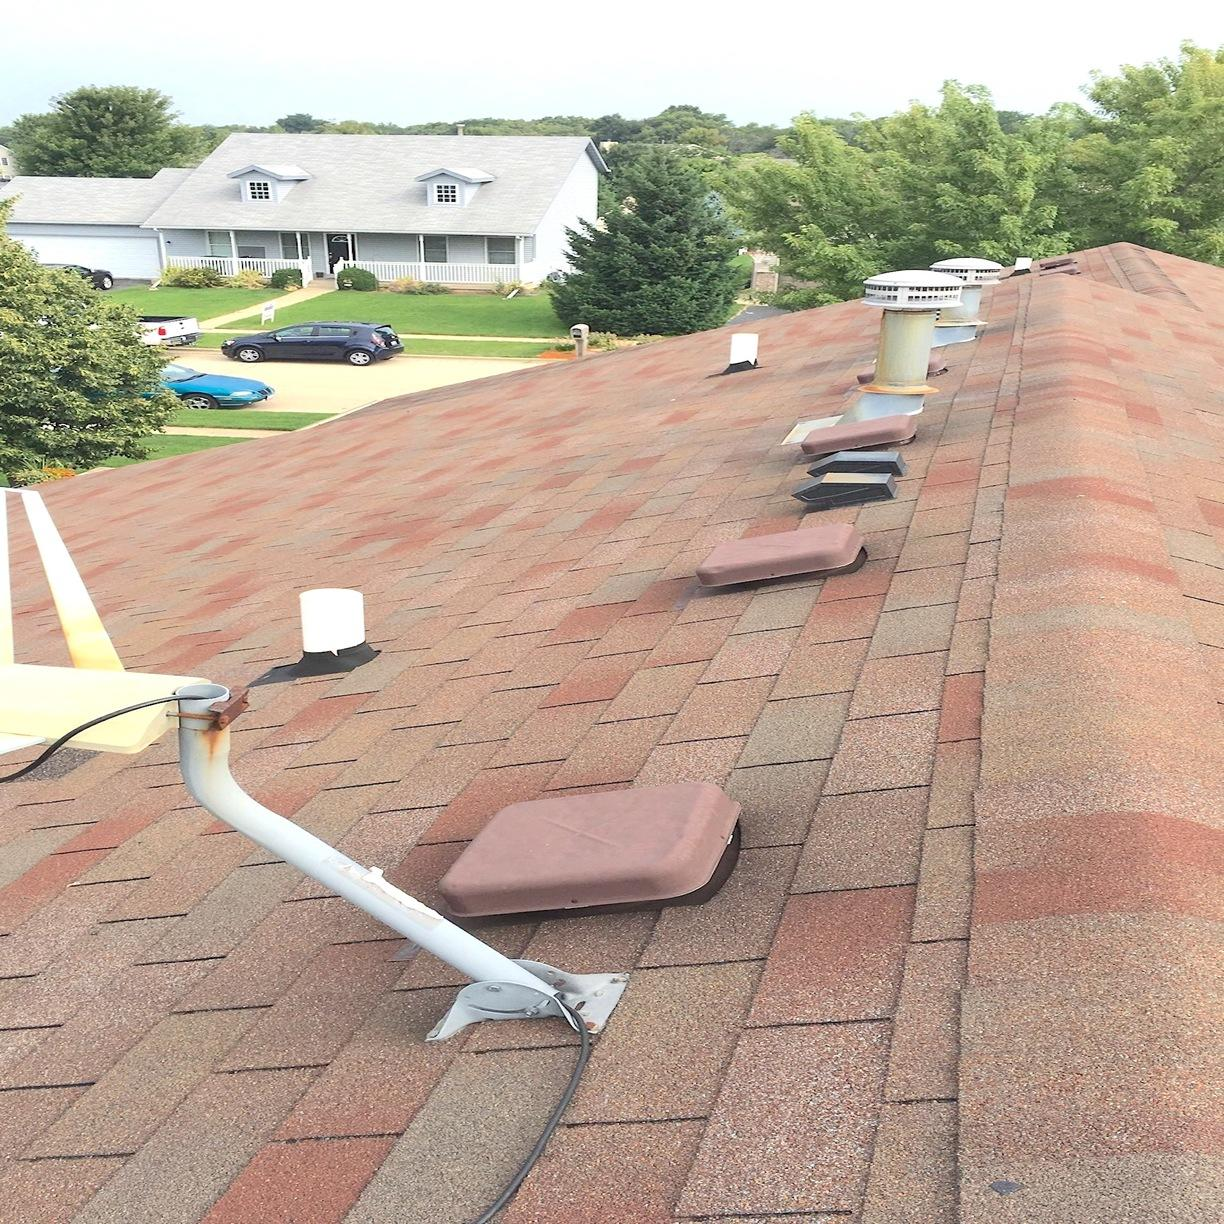 Belvidere, IL Roofing Replacement in Burnt Sienna - Before Photo